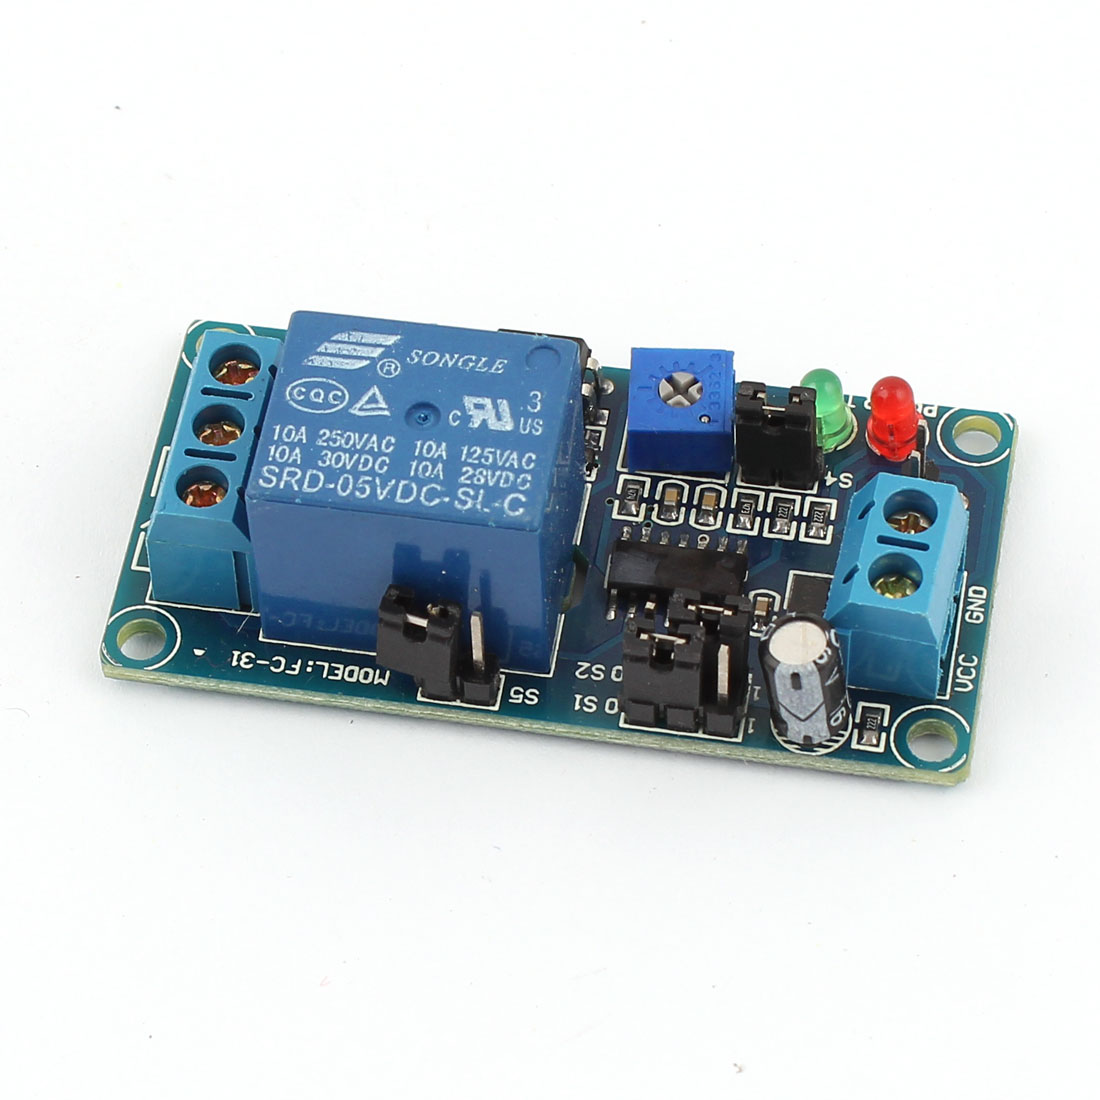 DC 5V SRD-05VDC-SL-C NC Circulate Time Delay Relay Module Board